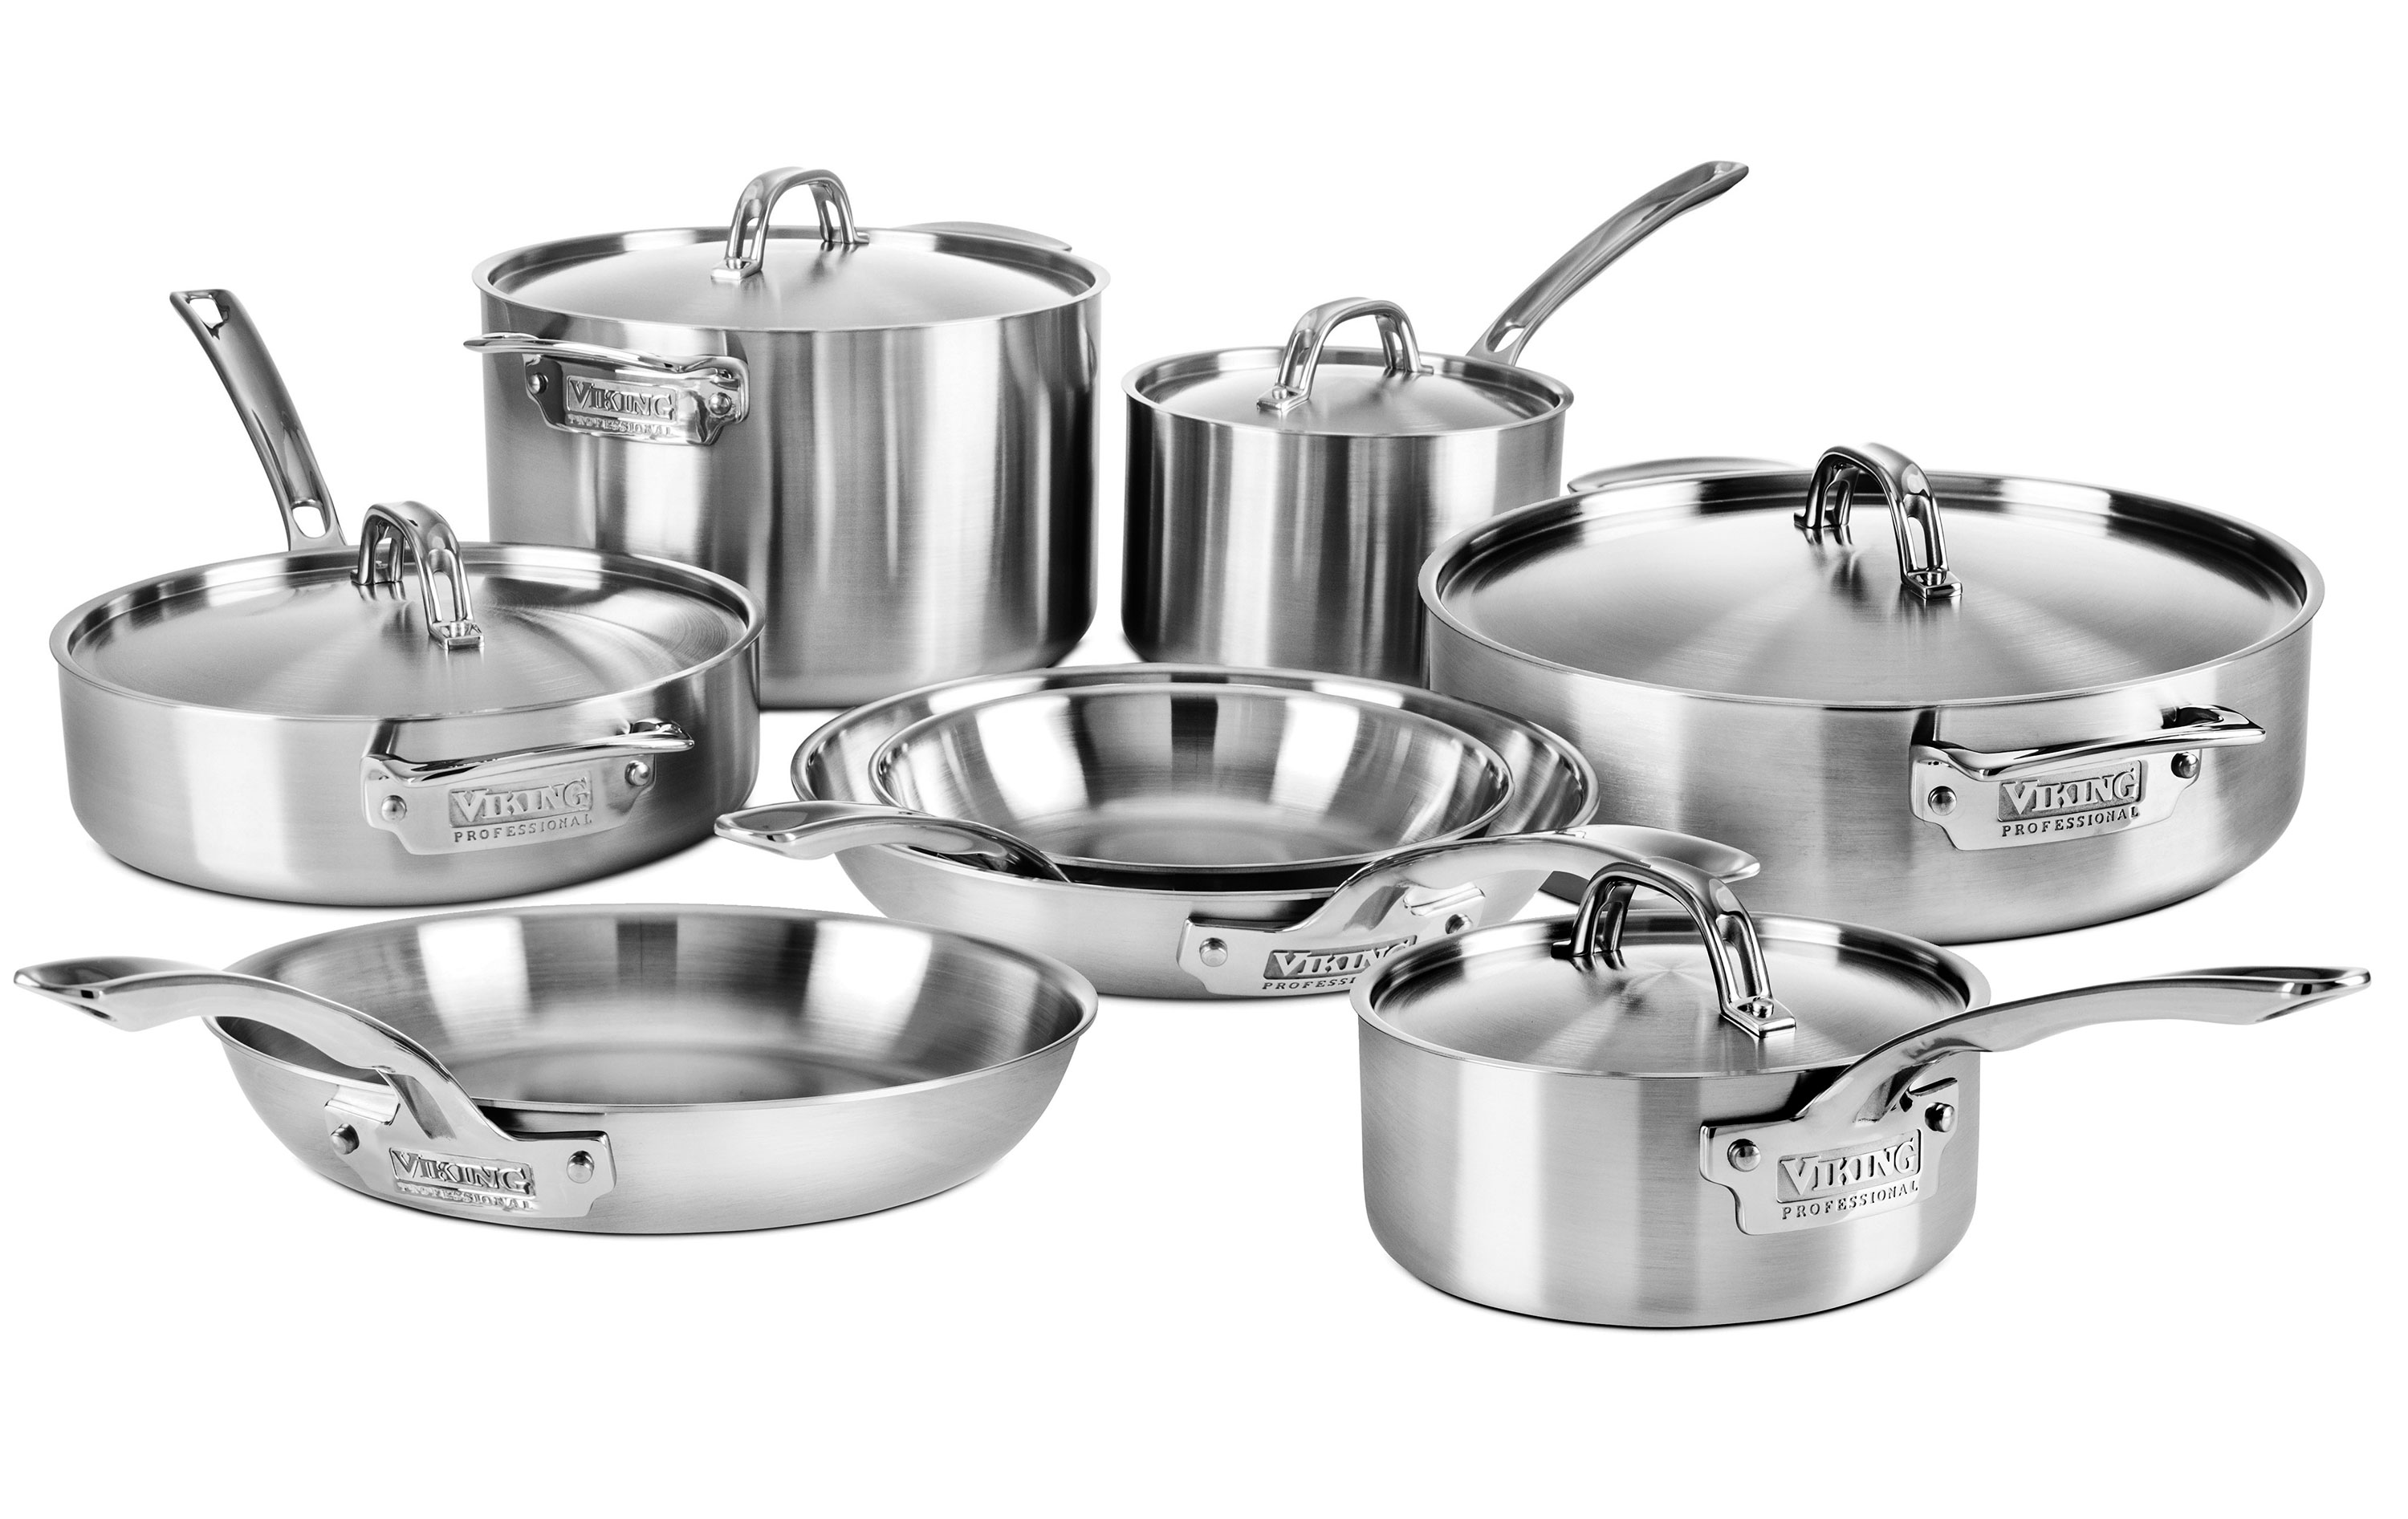 Viking Cookware Set 5 Ply Pro Stainless Steel 13 Piece